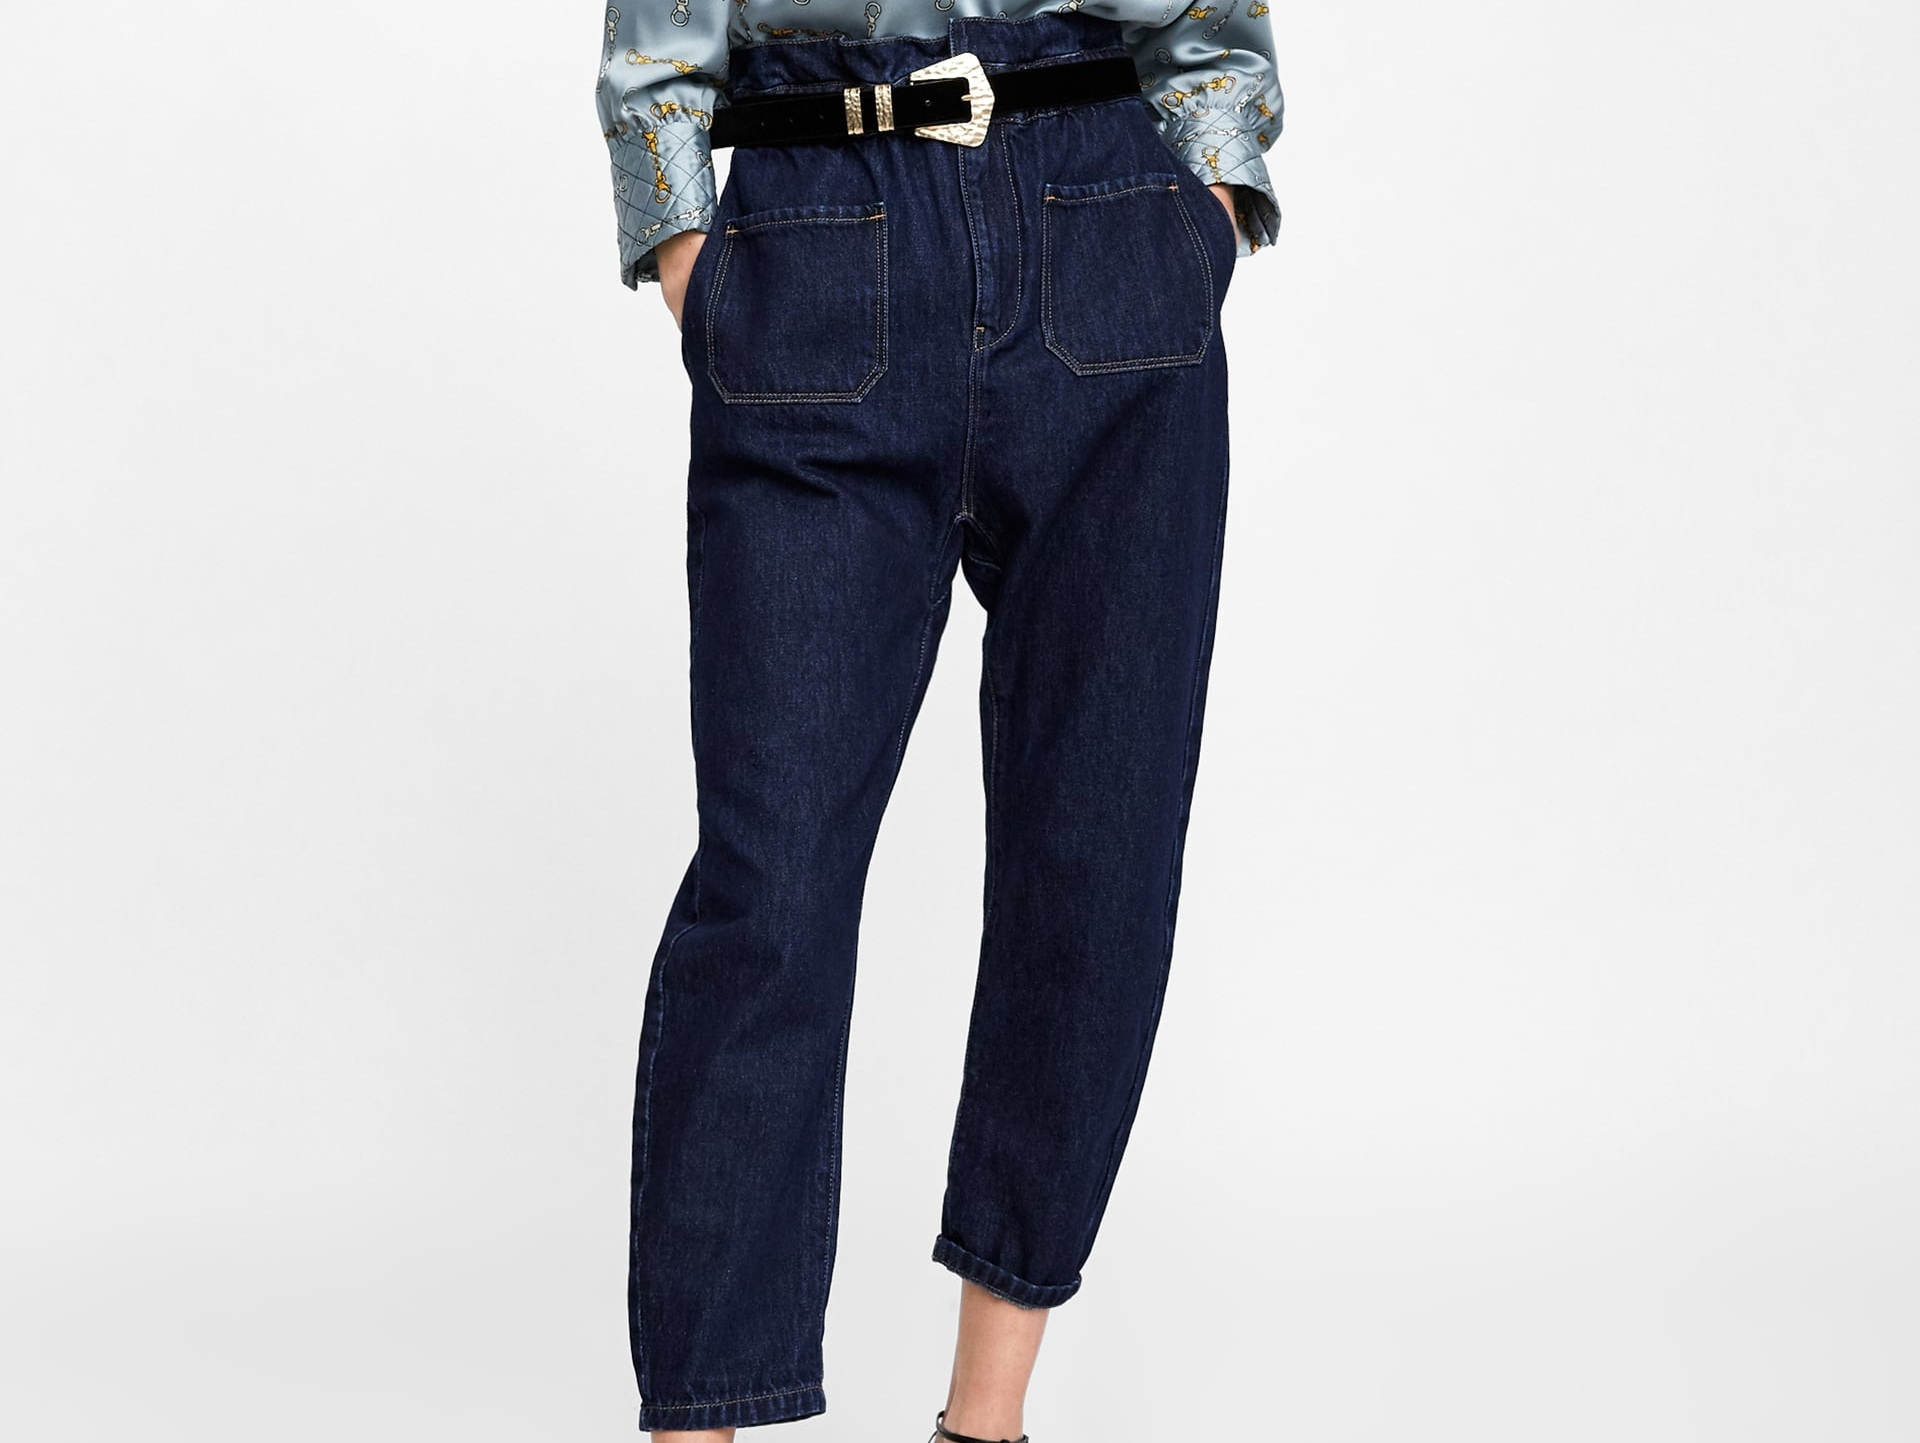 Paperbag Waist Jeans